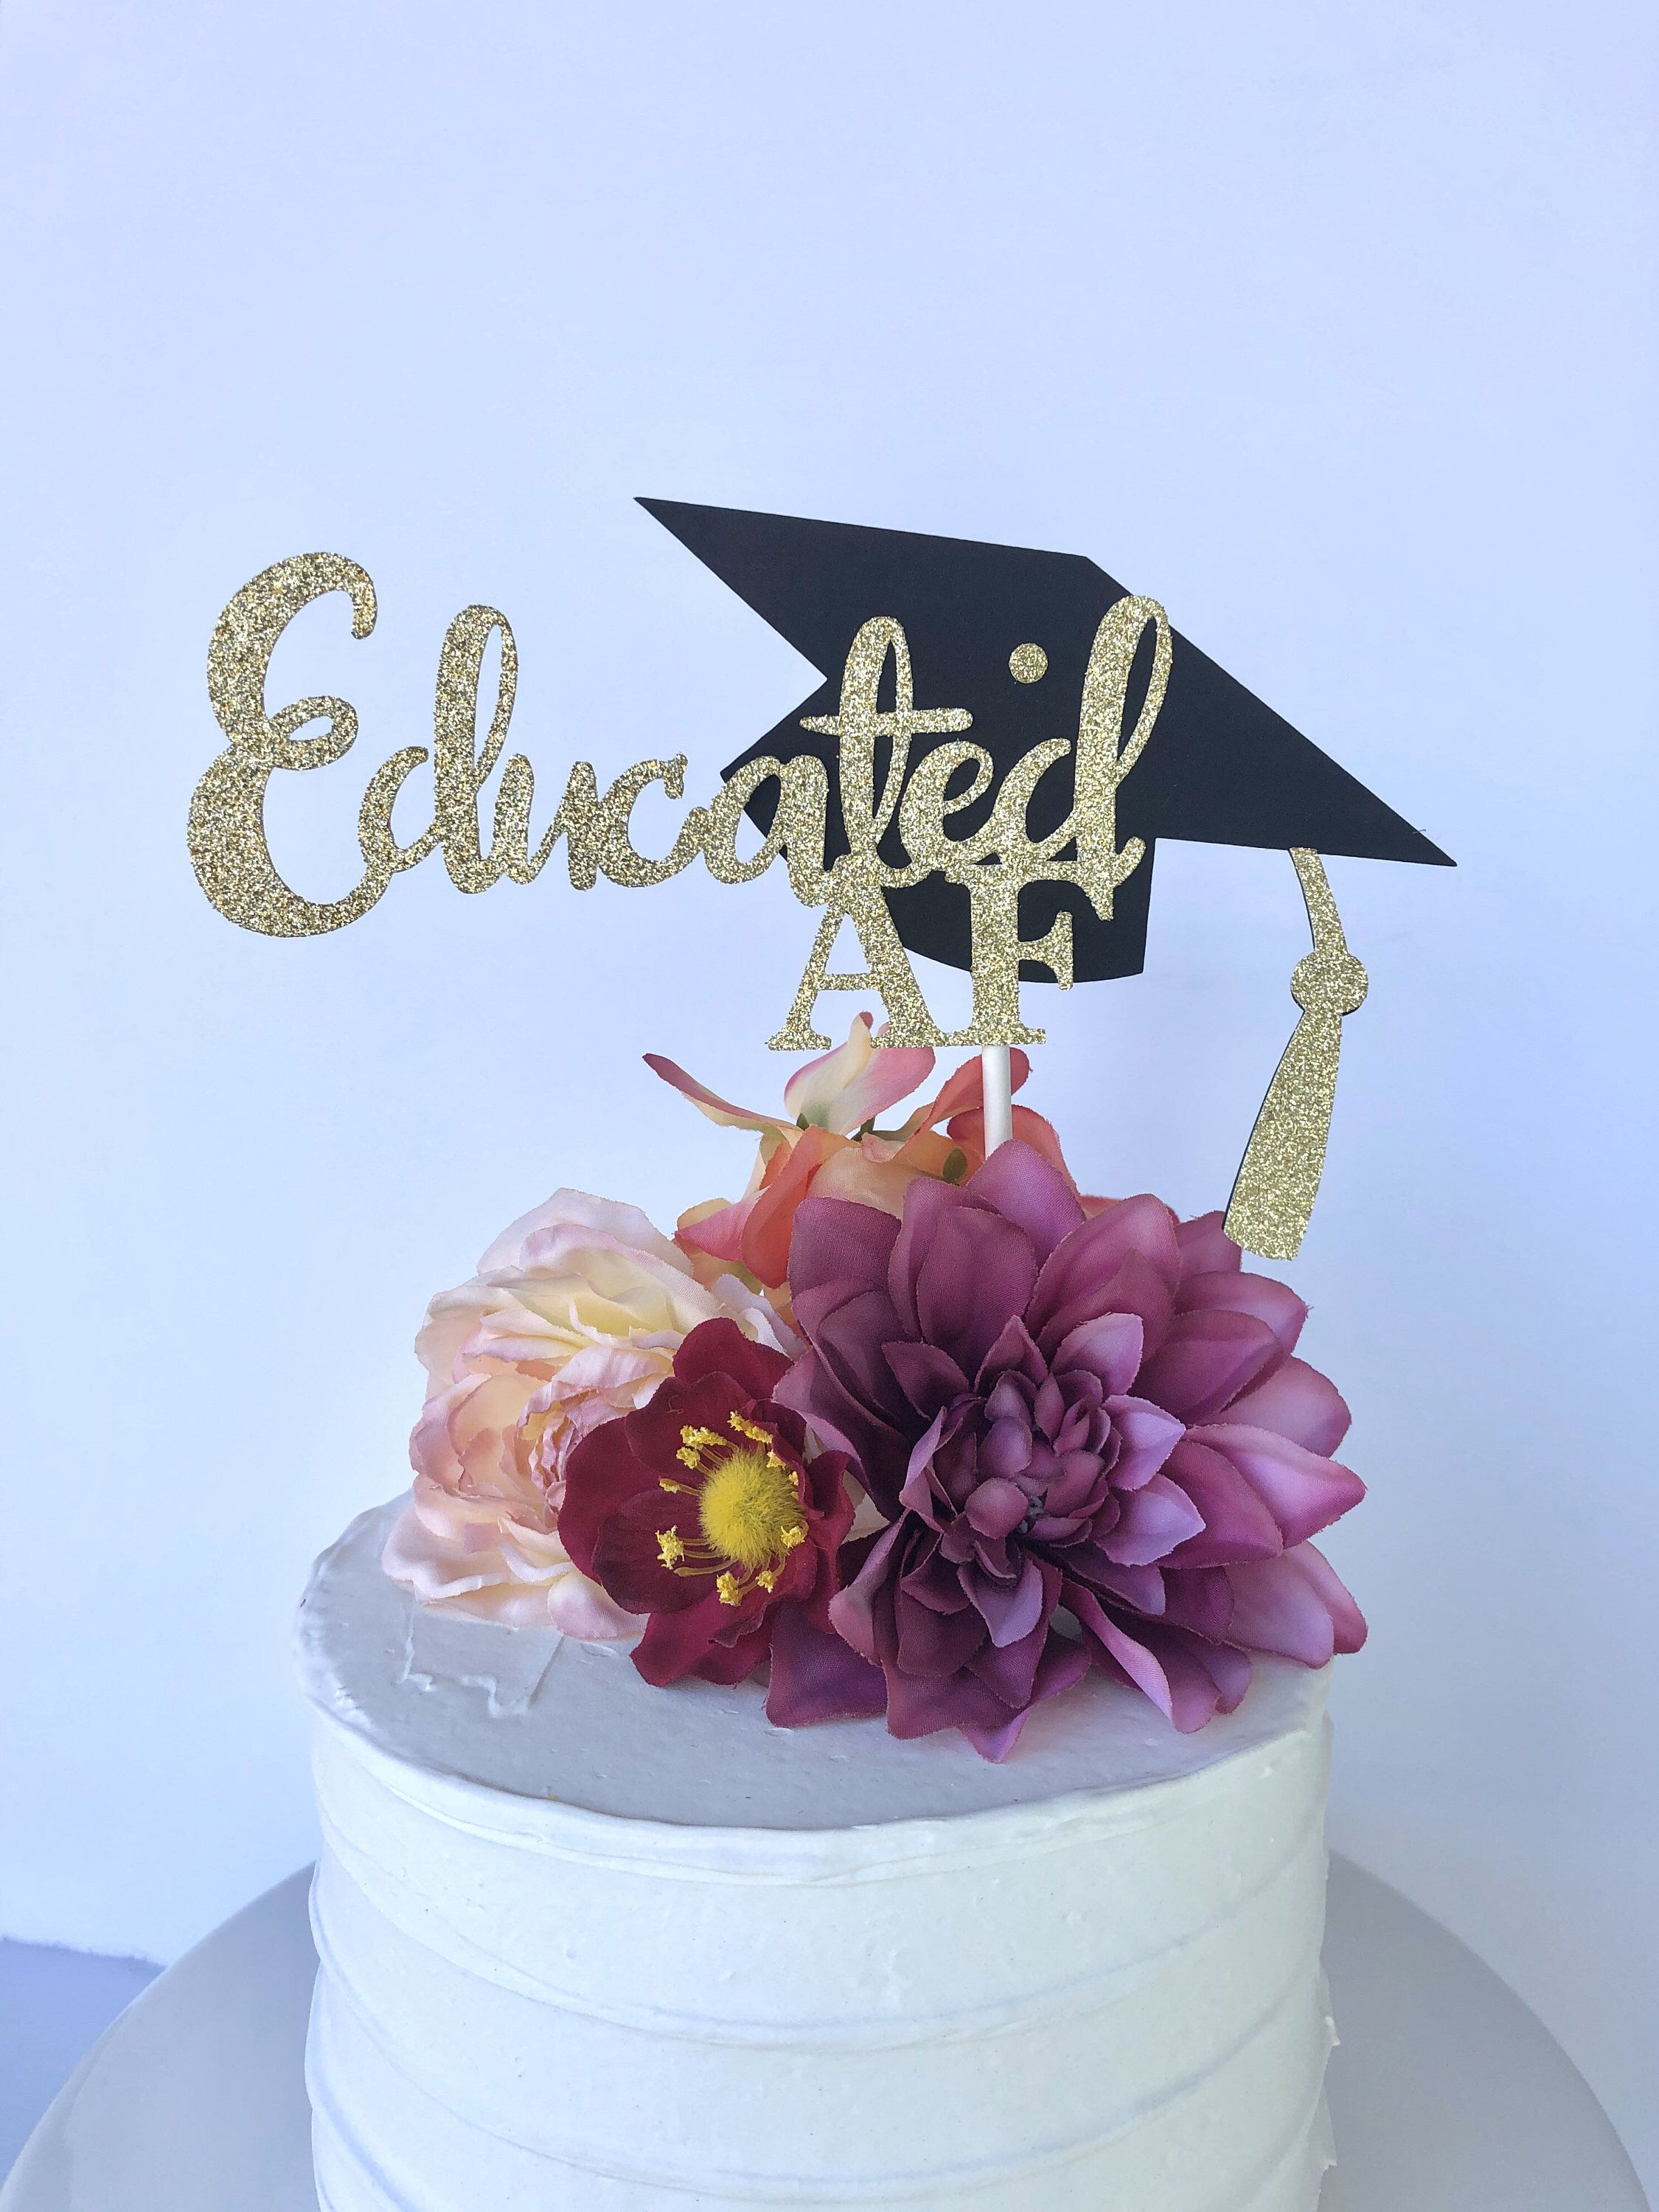 Graduation Glitter Educated Af Cake Topper Funny High School College Cake Topper Graduation Cake Toppers Graduation Party Cake College Graduation Cakes